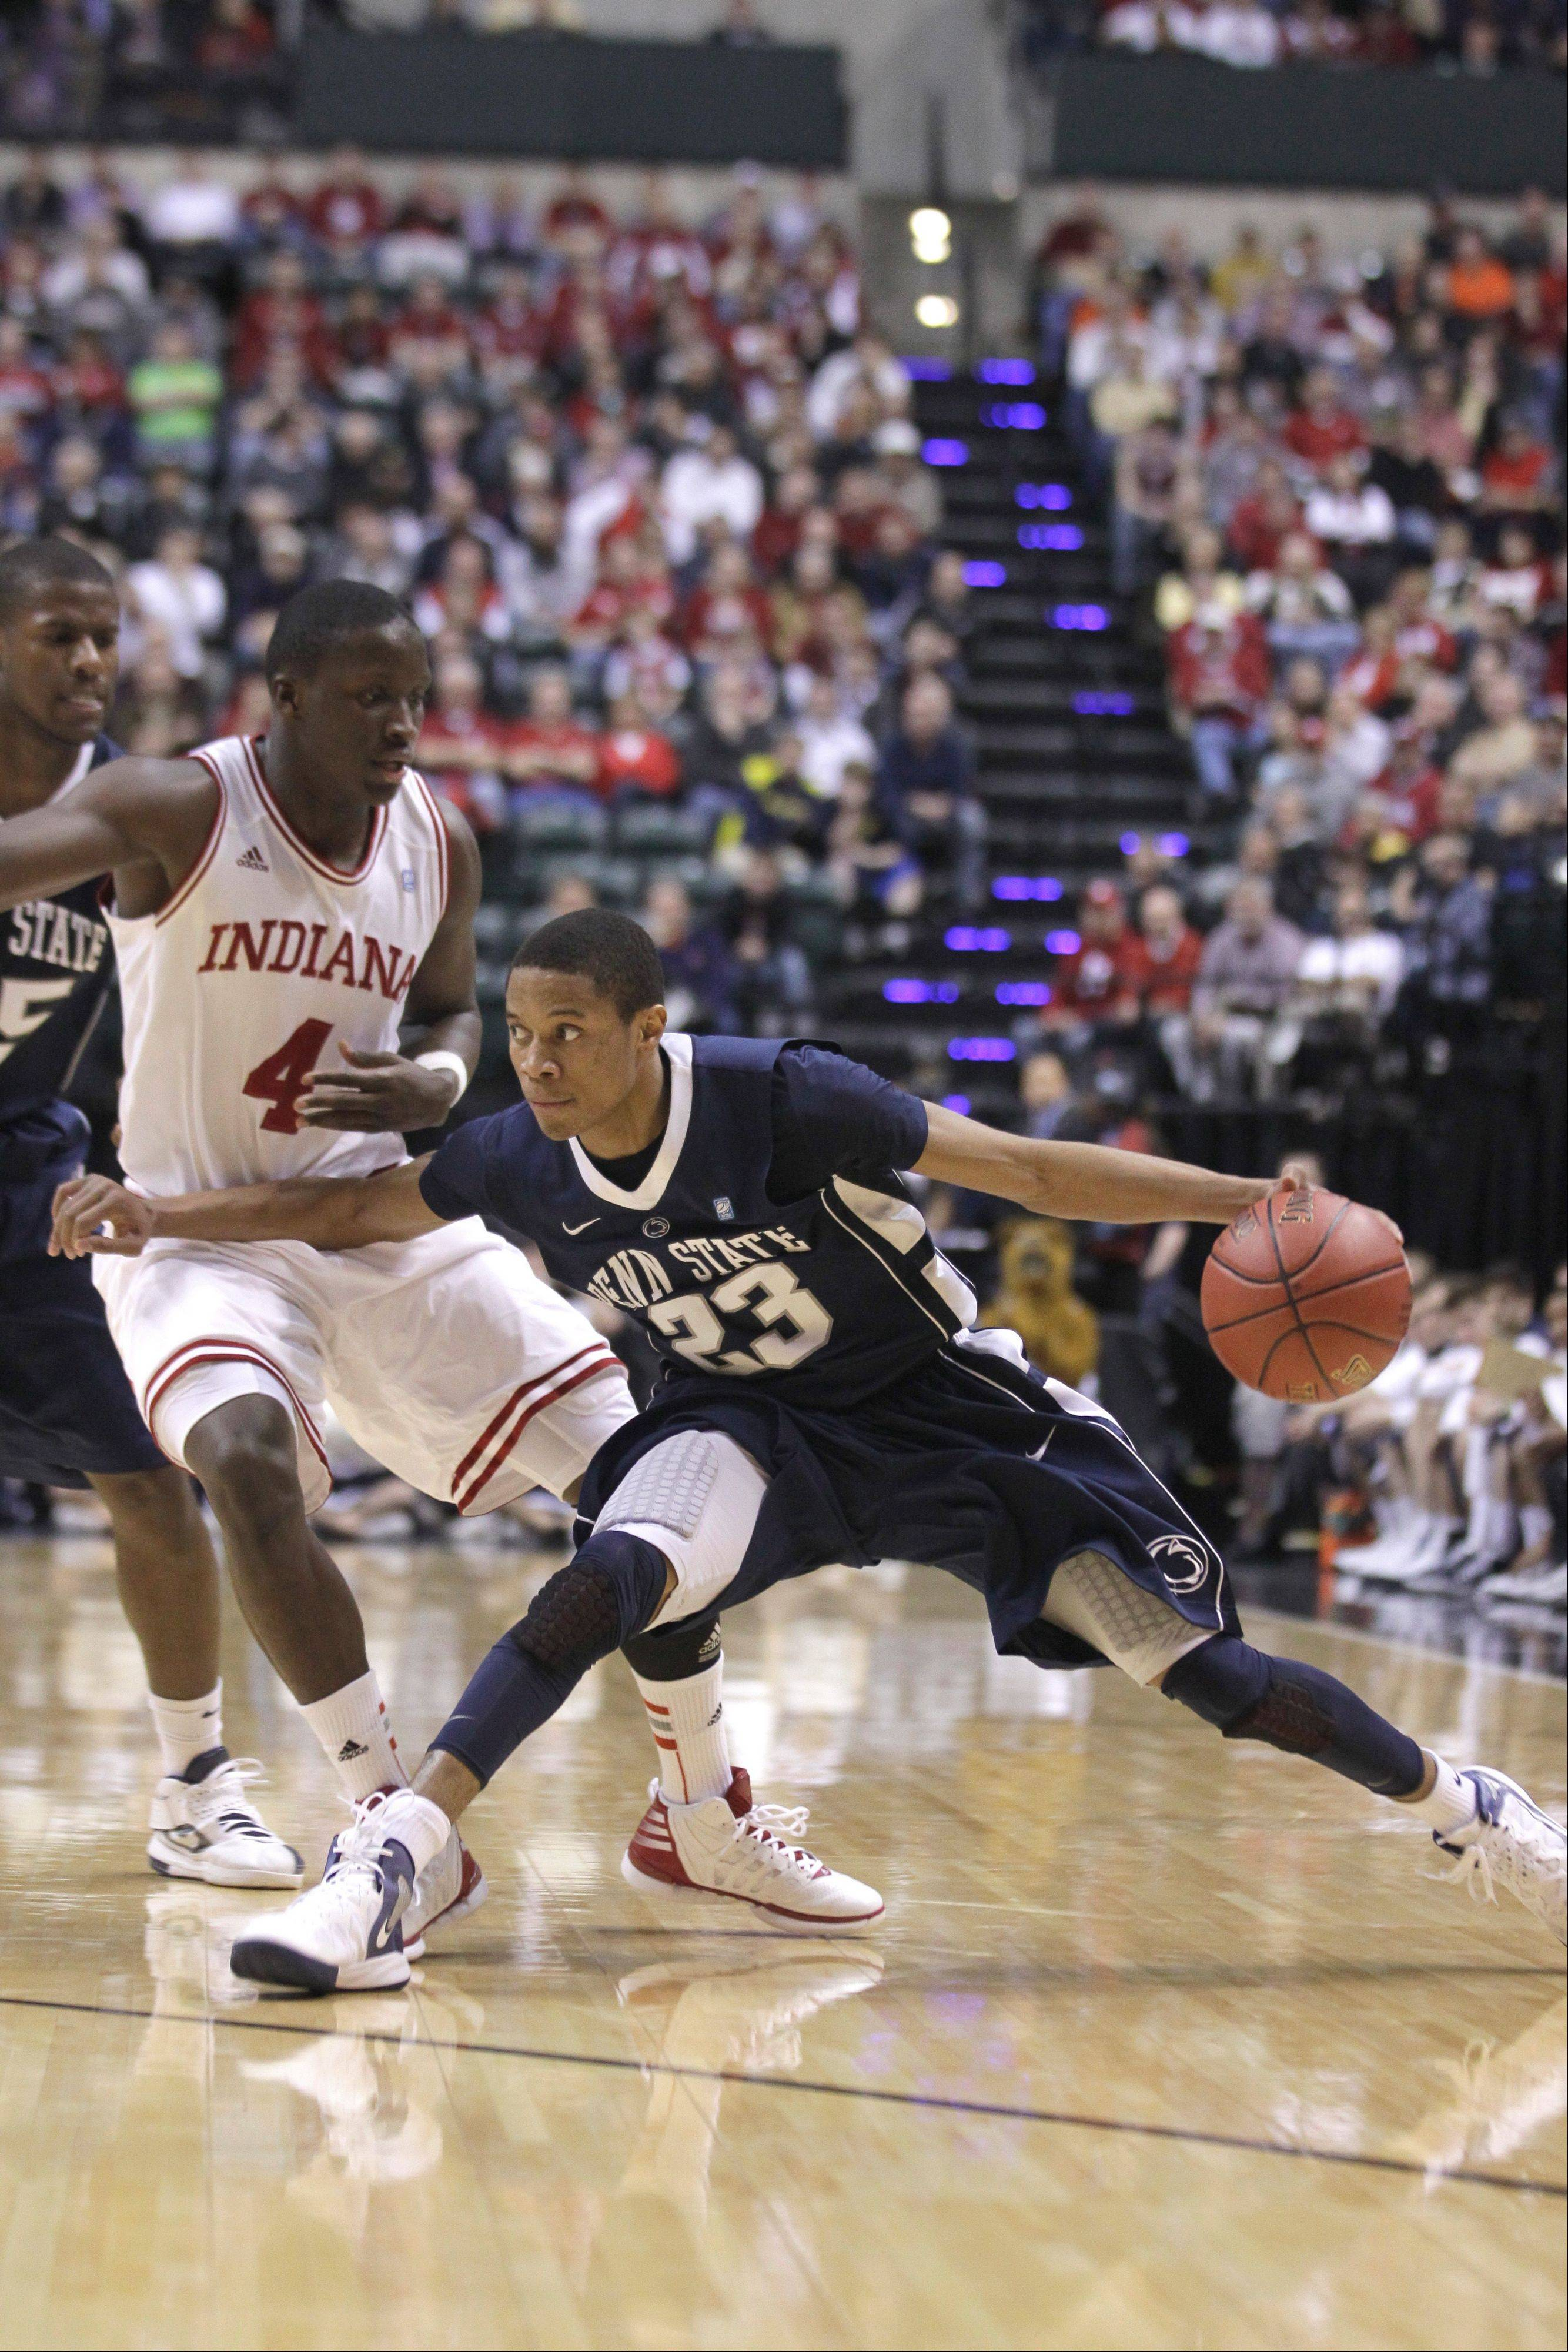 Penn State guard Tim Frazier, here driving against Indiana in last season's Big Ten Conference tournament, will miss the rest of the season with a ruptured left Achilles tendon.